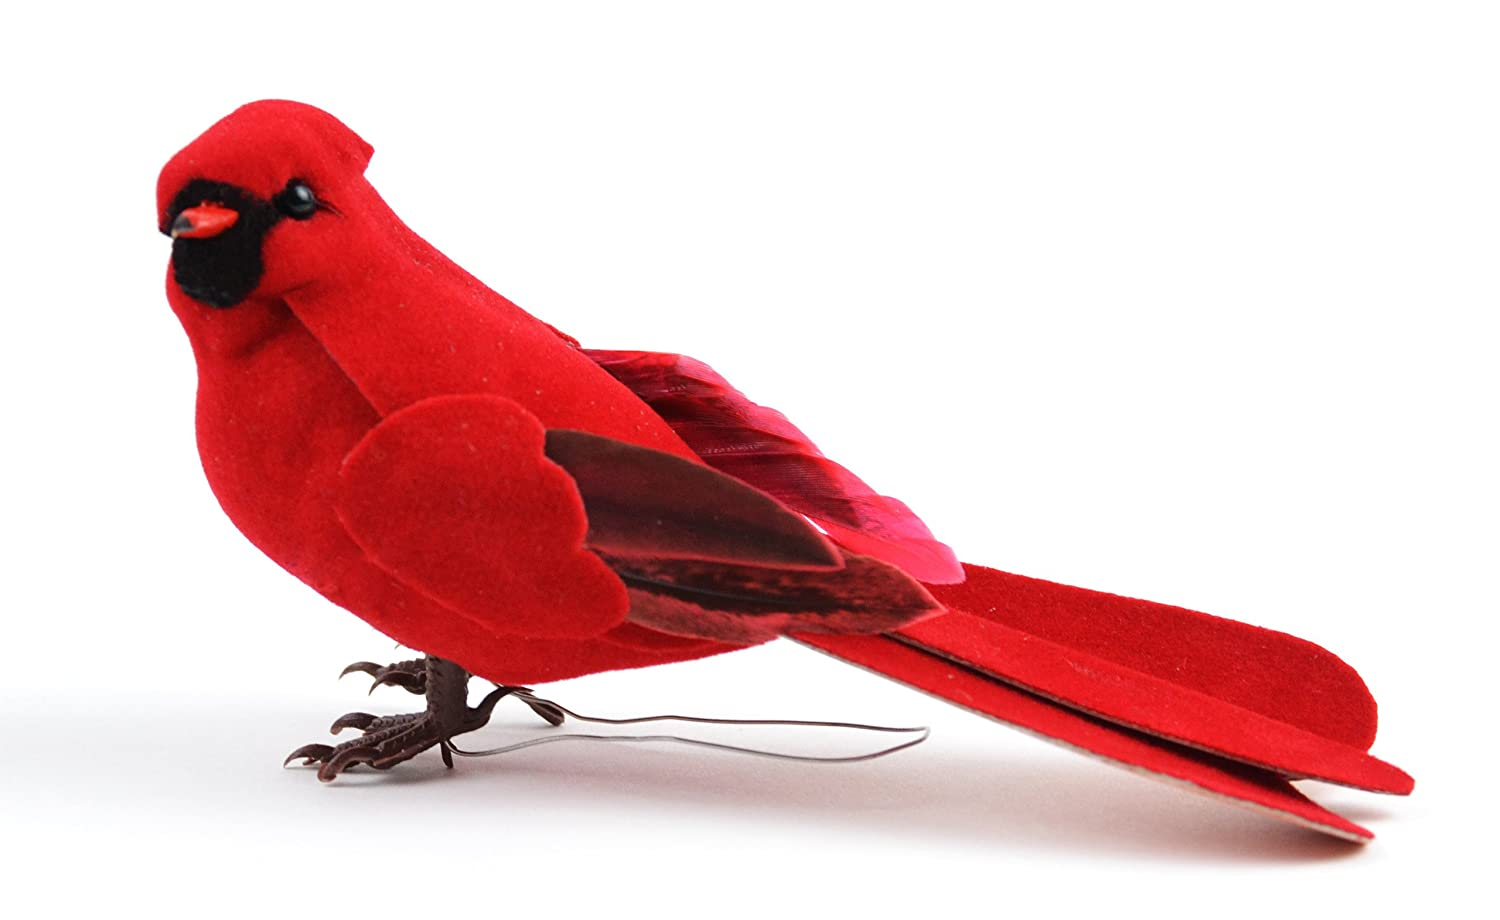 Touch of Nature 20643 Cardinal, 5-Inch, Male Cardinal Midwest Design Imports Inc.